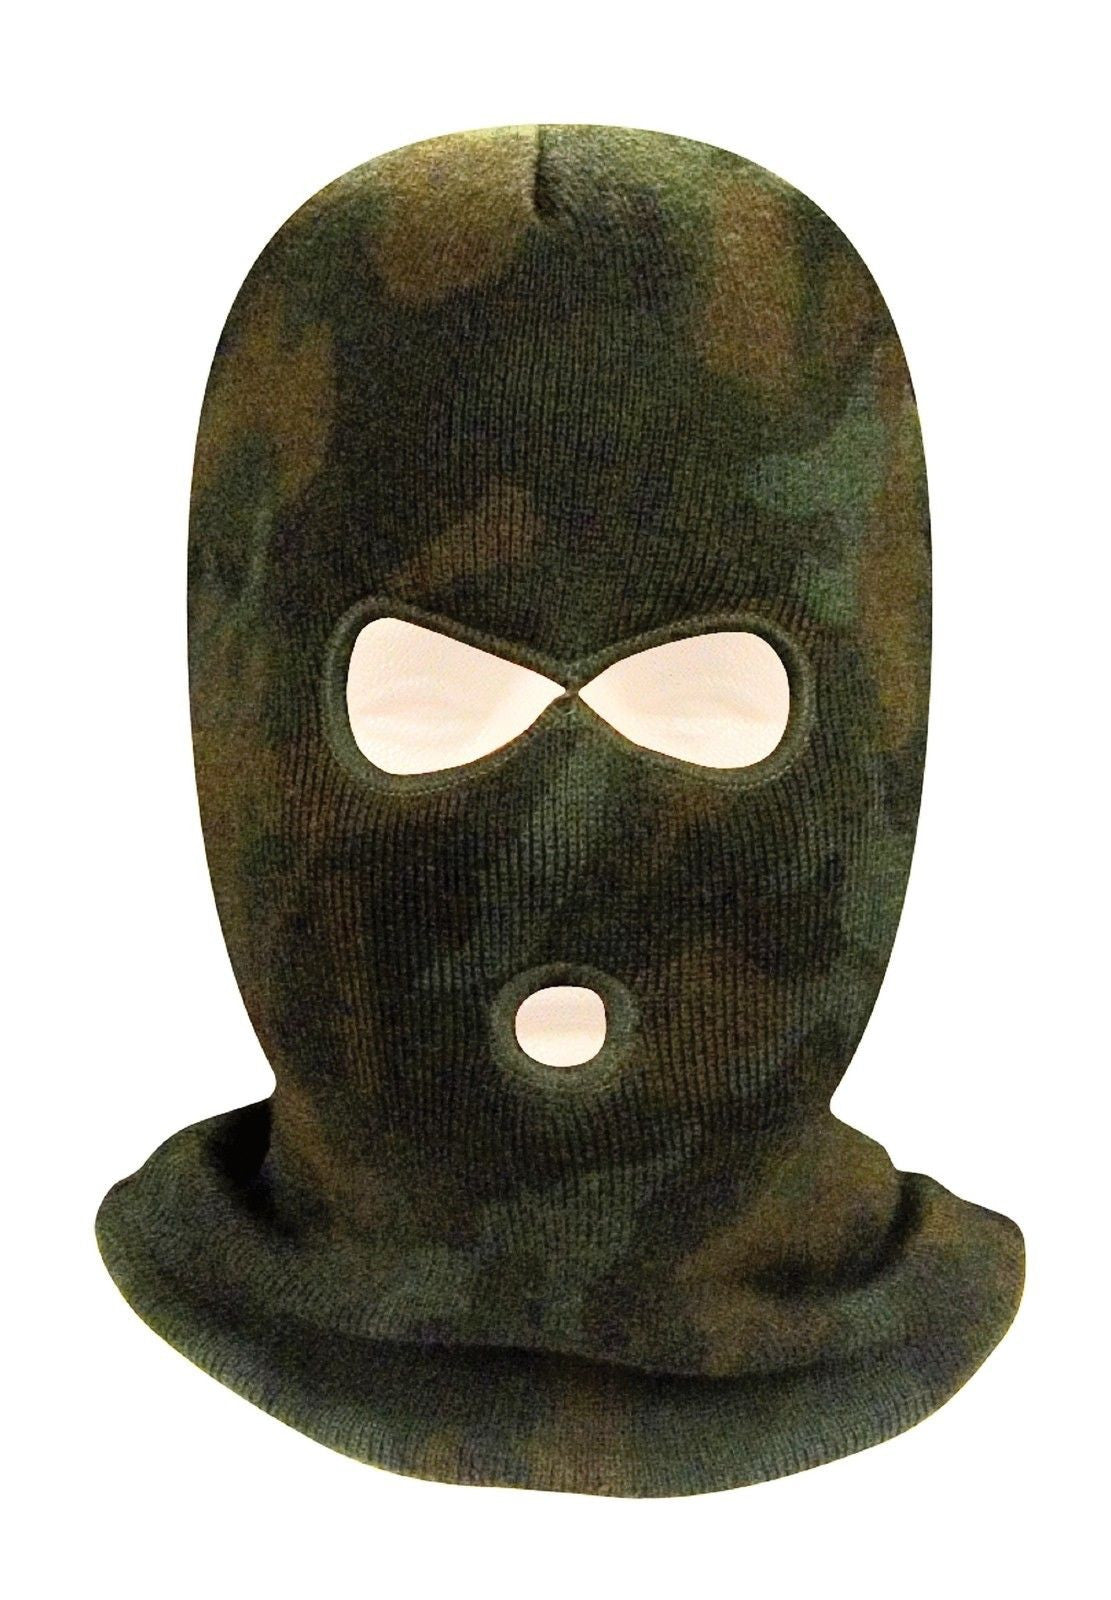 df7263abb96 3 Hole Face Mask Ski Mask Winter Cap Balaclava Hood Army Tactical Mask USA  MADE Black Coyote Brown Foliage Green Olive Drab Woodland Camouflage